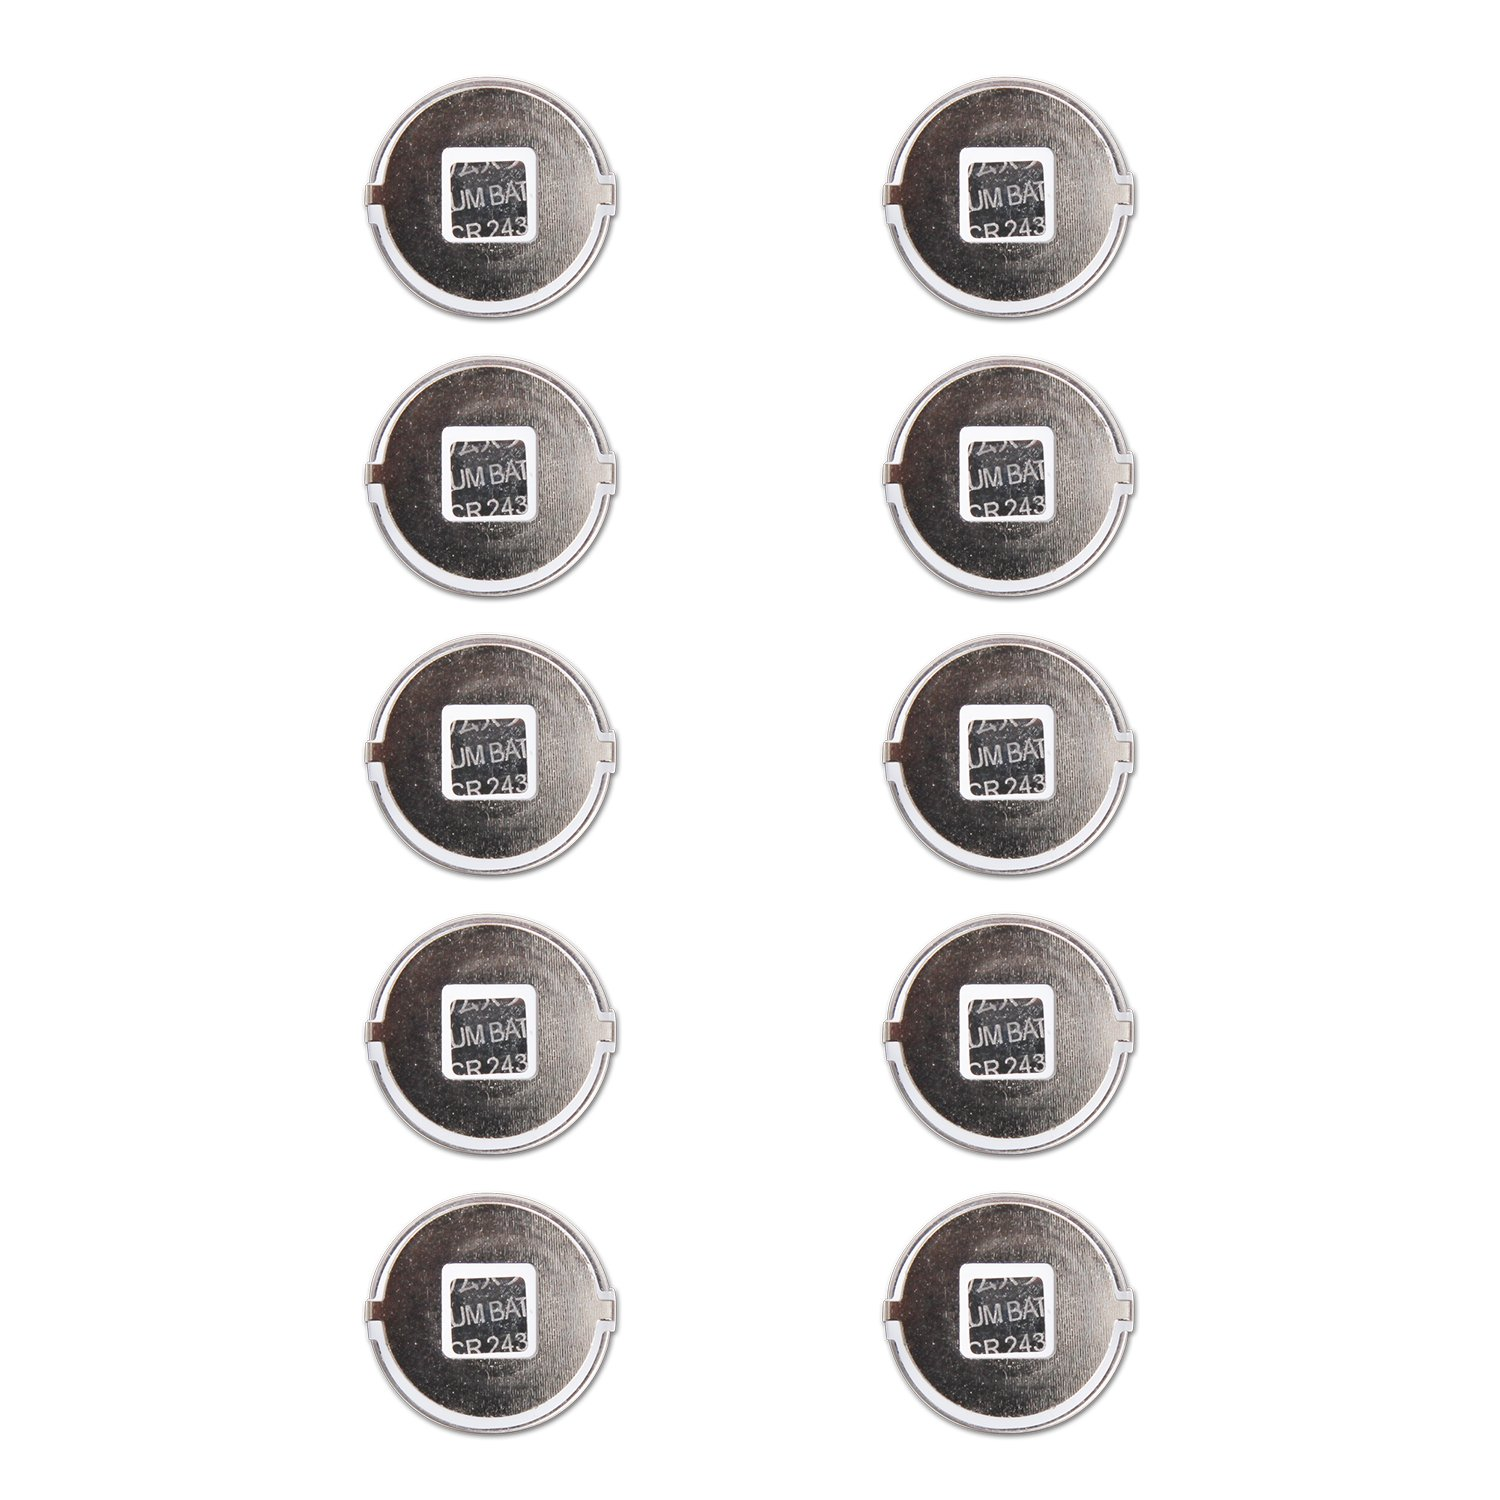 10 Pack Non-OEM Battery Compatible with High Tech Pet Electronic Collar Model Ms-4 and Ms-5